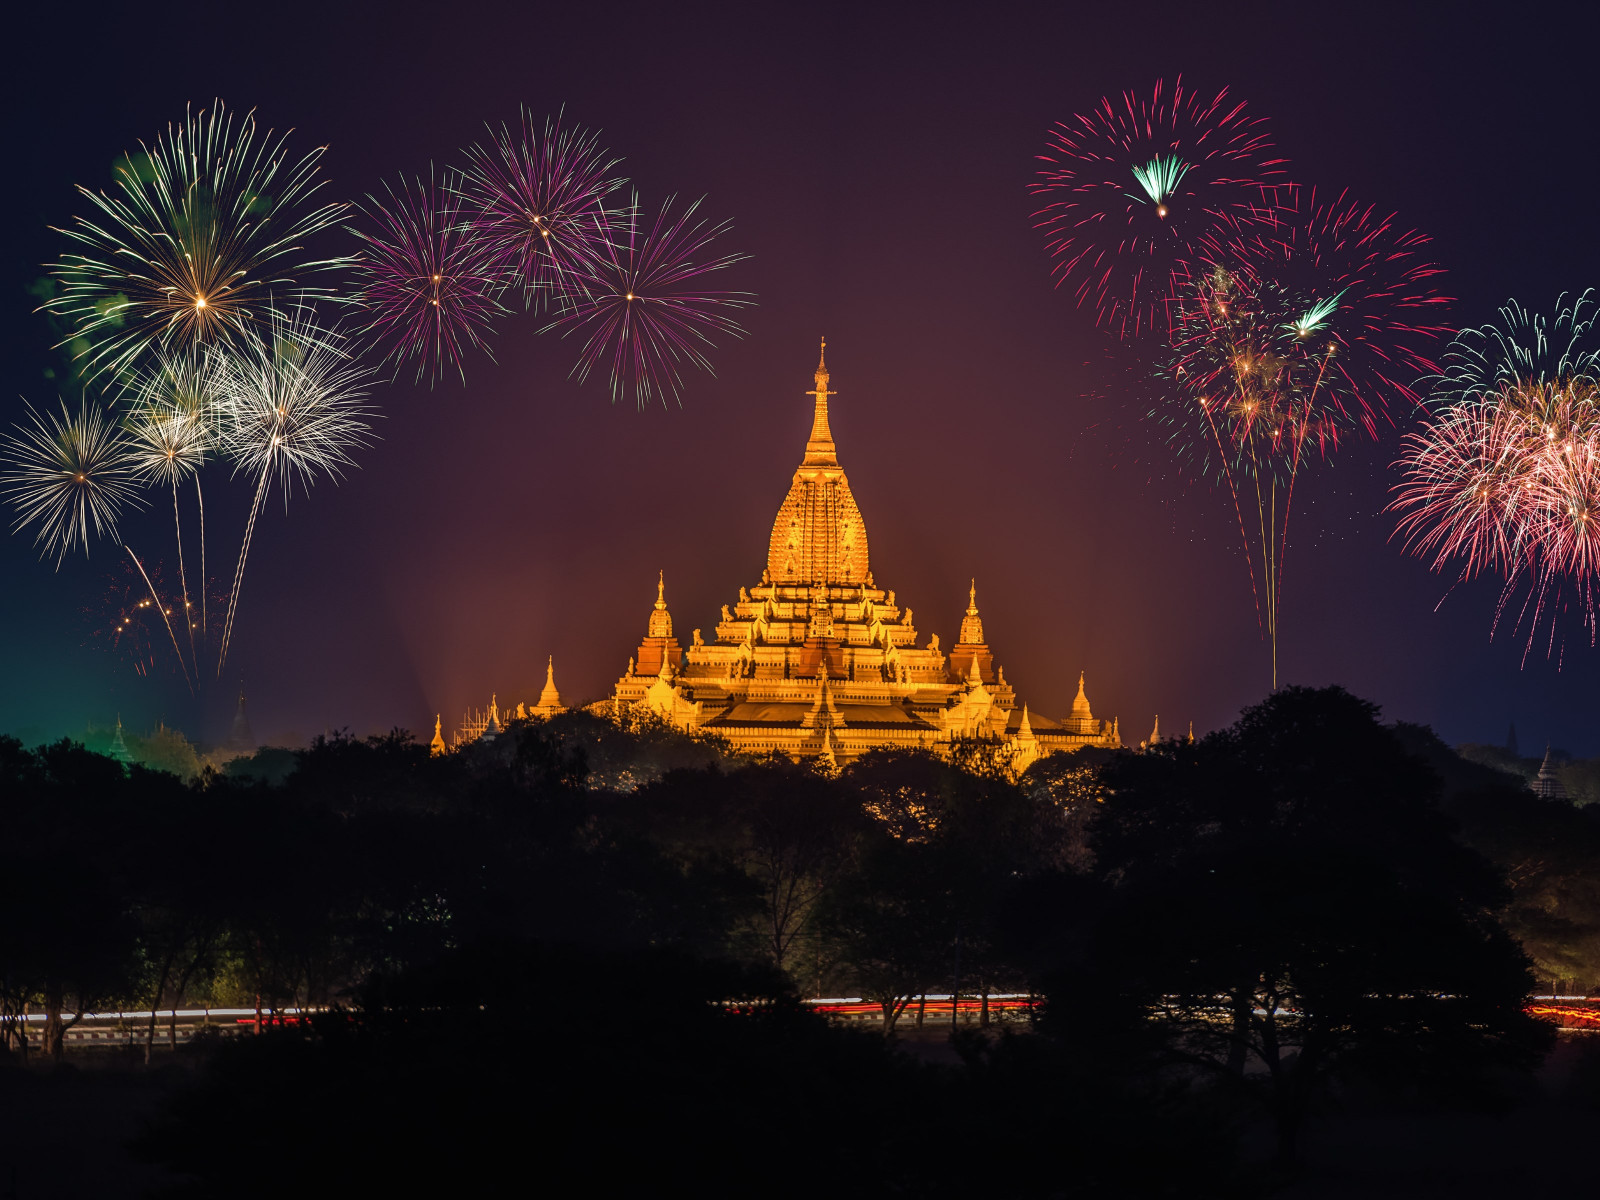 Fireworks above Ananda Phato temple | 1600x1200 wallpaper